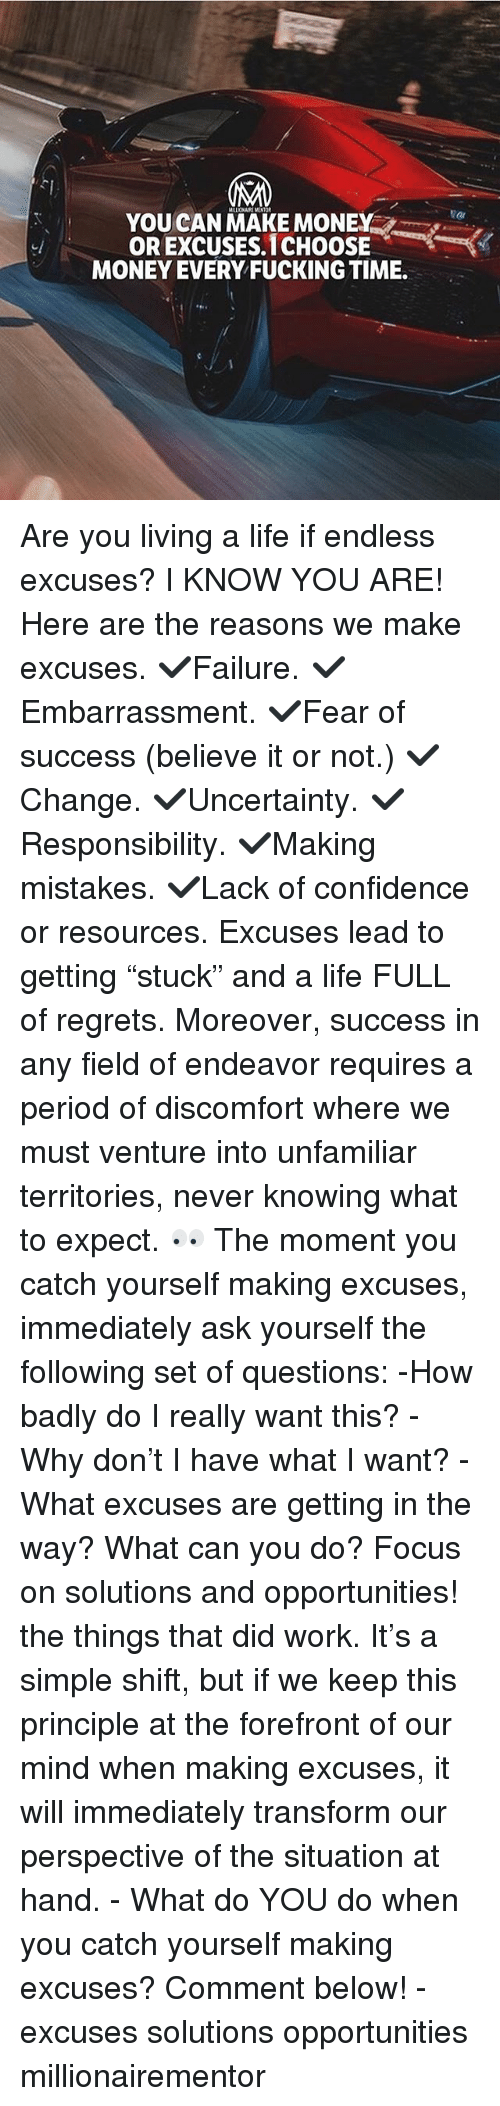 "Confidence, Fucking, and Life: YOUCAN MAKE MONEY  OR EXCUSES.1CHOOSE  MONEY EVERY FUCKING TIME. Are you living a life if endless excuses? I KNOW YOU ARE! Here are the reasons we make excuses. ✔️Failure. ✔️Embarrassment. ✔️Fear of success (believe it or not.) ✔️Change. ✔️Uncertainty. ✔️Responsibility. ✔️Making mistakes. ✔️Lack of confidence or resources. Excuses lead to getting ""stuck"" and a life FULL of regrets. Moreover, success in any field of endeavor requires a period of discomfort where we must venture into unfamiliar territories, never knowing what to expect. 👀 The moment you catch yourself making excuses, immediately ask yourself the following set of questions: -How badly do I really want this? -Why don't I have what I want? -What excuses are getting in the way? What can you do? Focus on solutions and opportunities! the things that did work. It's a simple shift, but if we keep this principle at the forefront of our mind when making excuses, it will immediately transform our perspective of the situation at hand. - What do YOU do when you catch yourself making excuses? Comment below! - excuses solutions opportunities millionairementor"